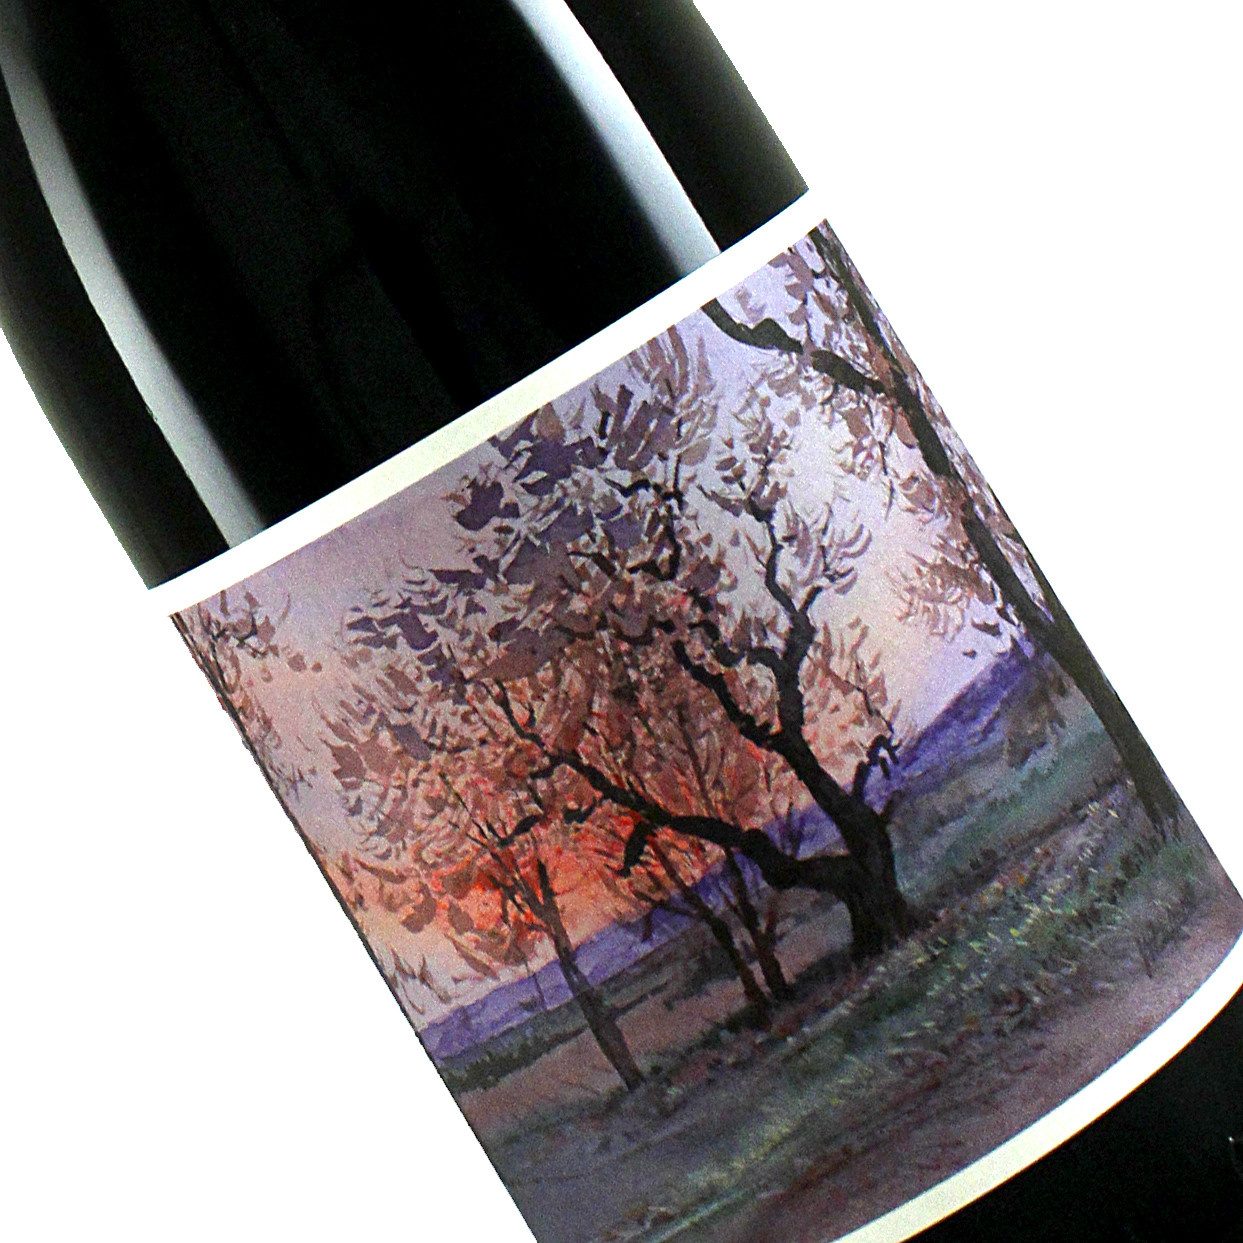 Johan Vineyards 2016 Blaufrankisch Willamette Valley, Oregon